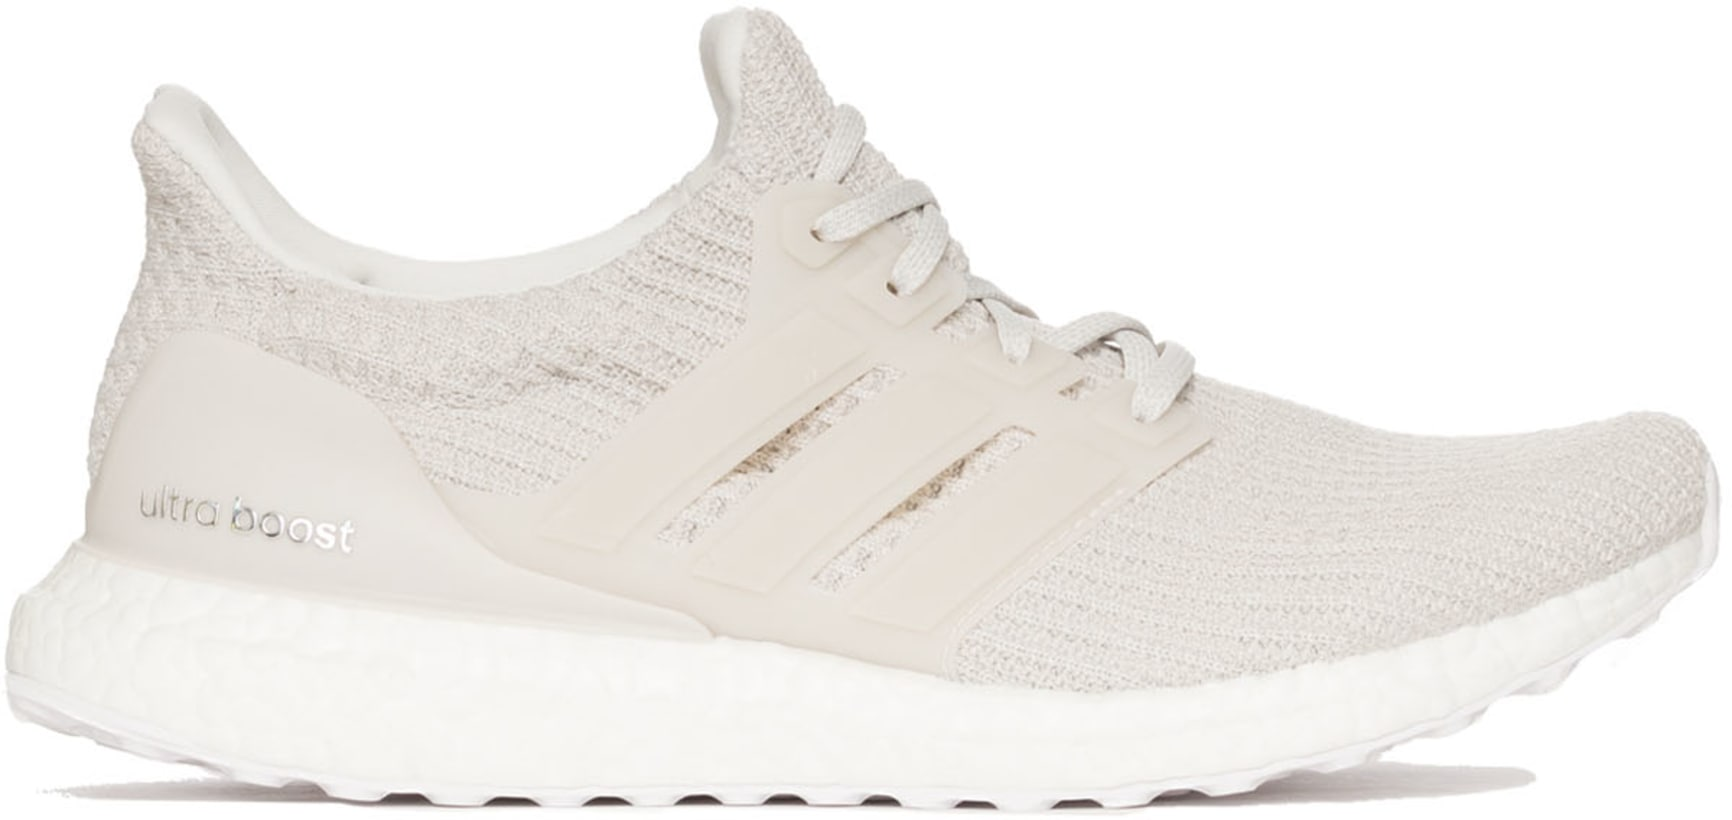 info for cf03f 23ac6 adidas Originals - UltraBOOST 4.0 - Chalk/Pearl Grey